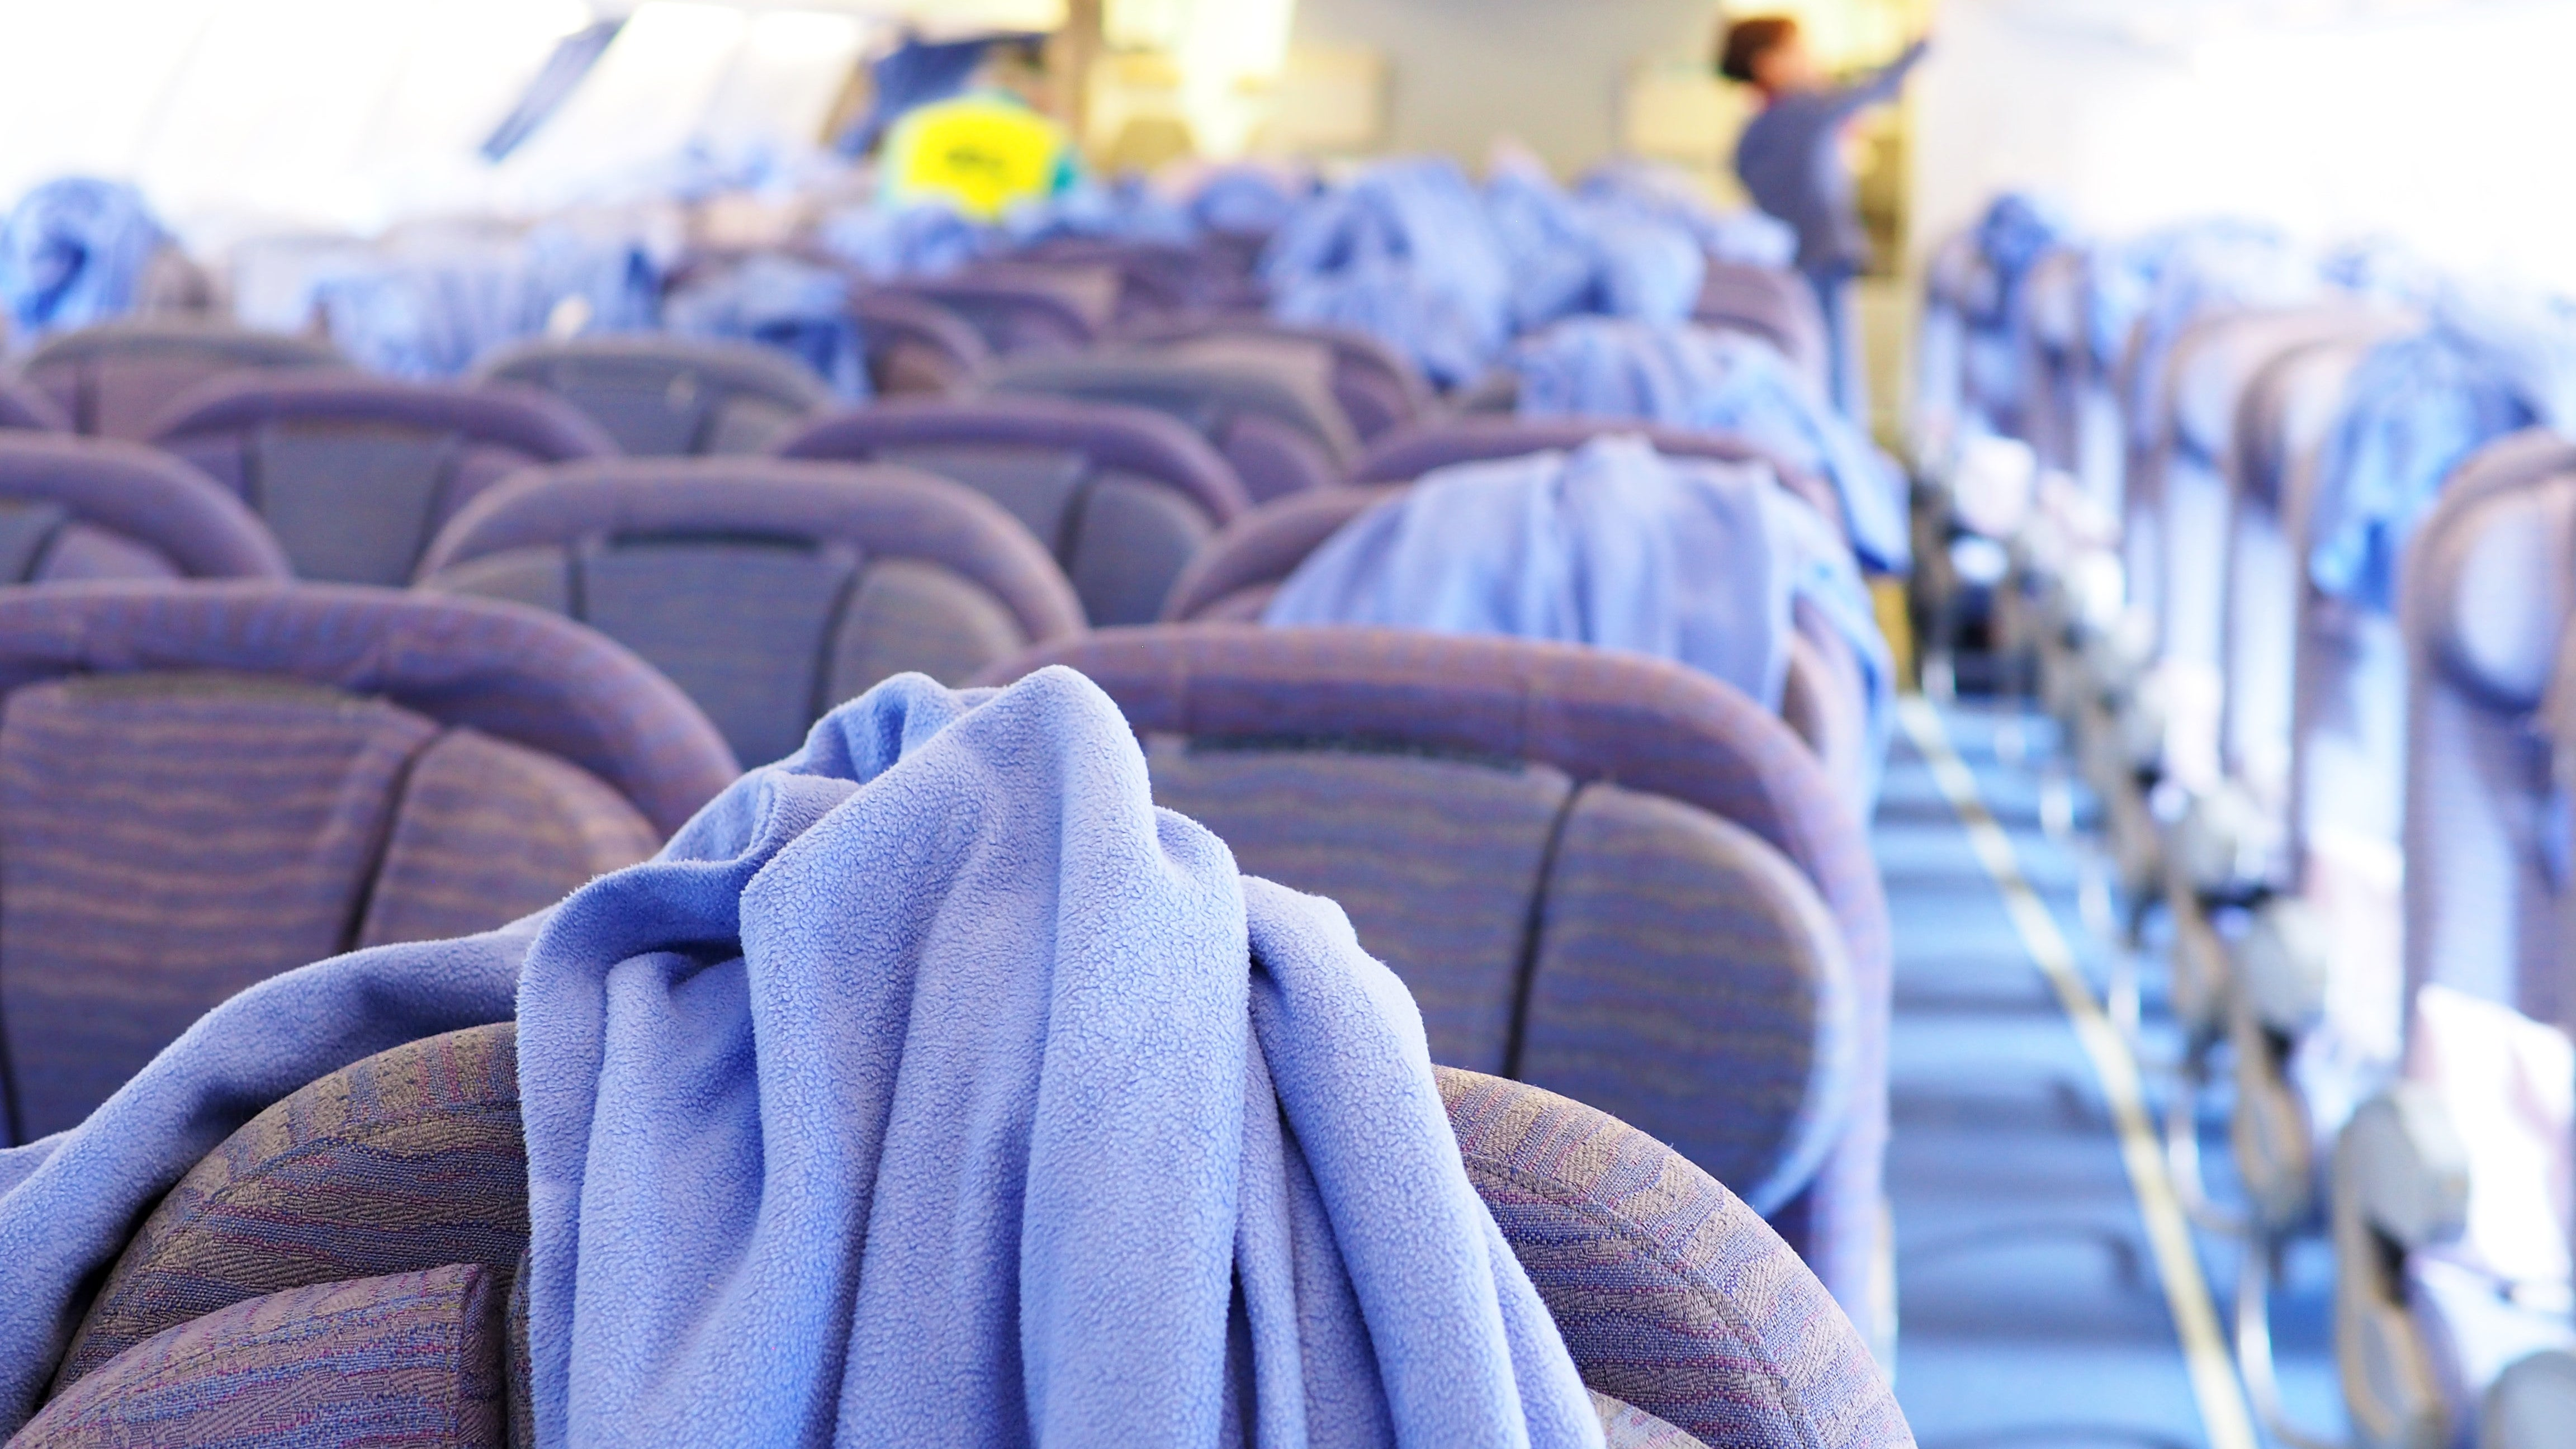 How Much Do Planes Actually Get Cleaned In Between Flights?